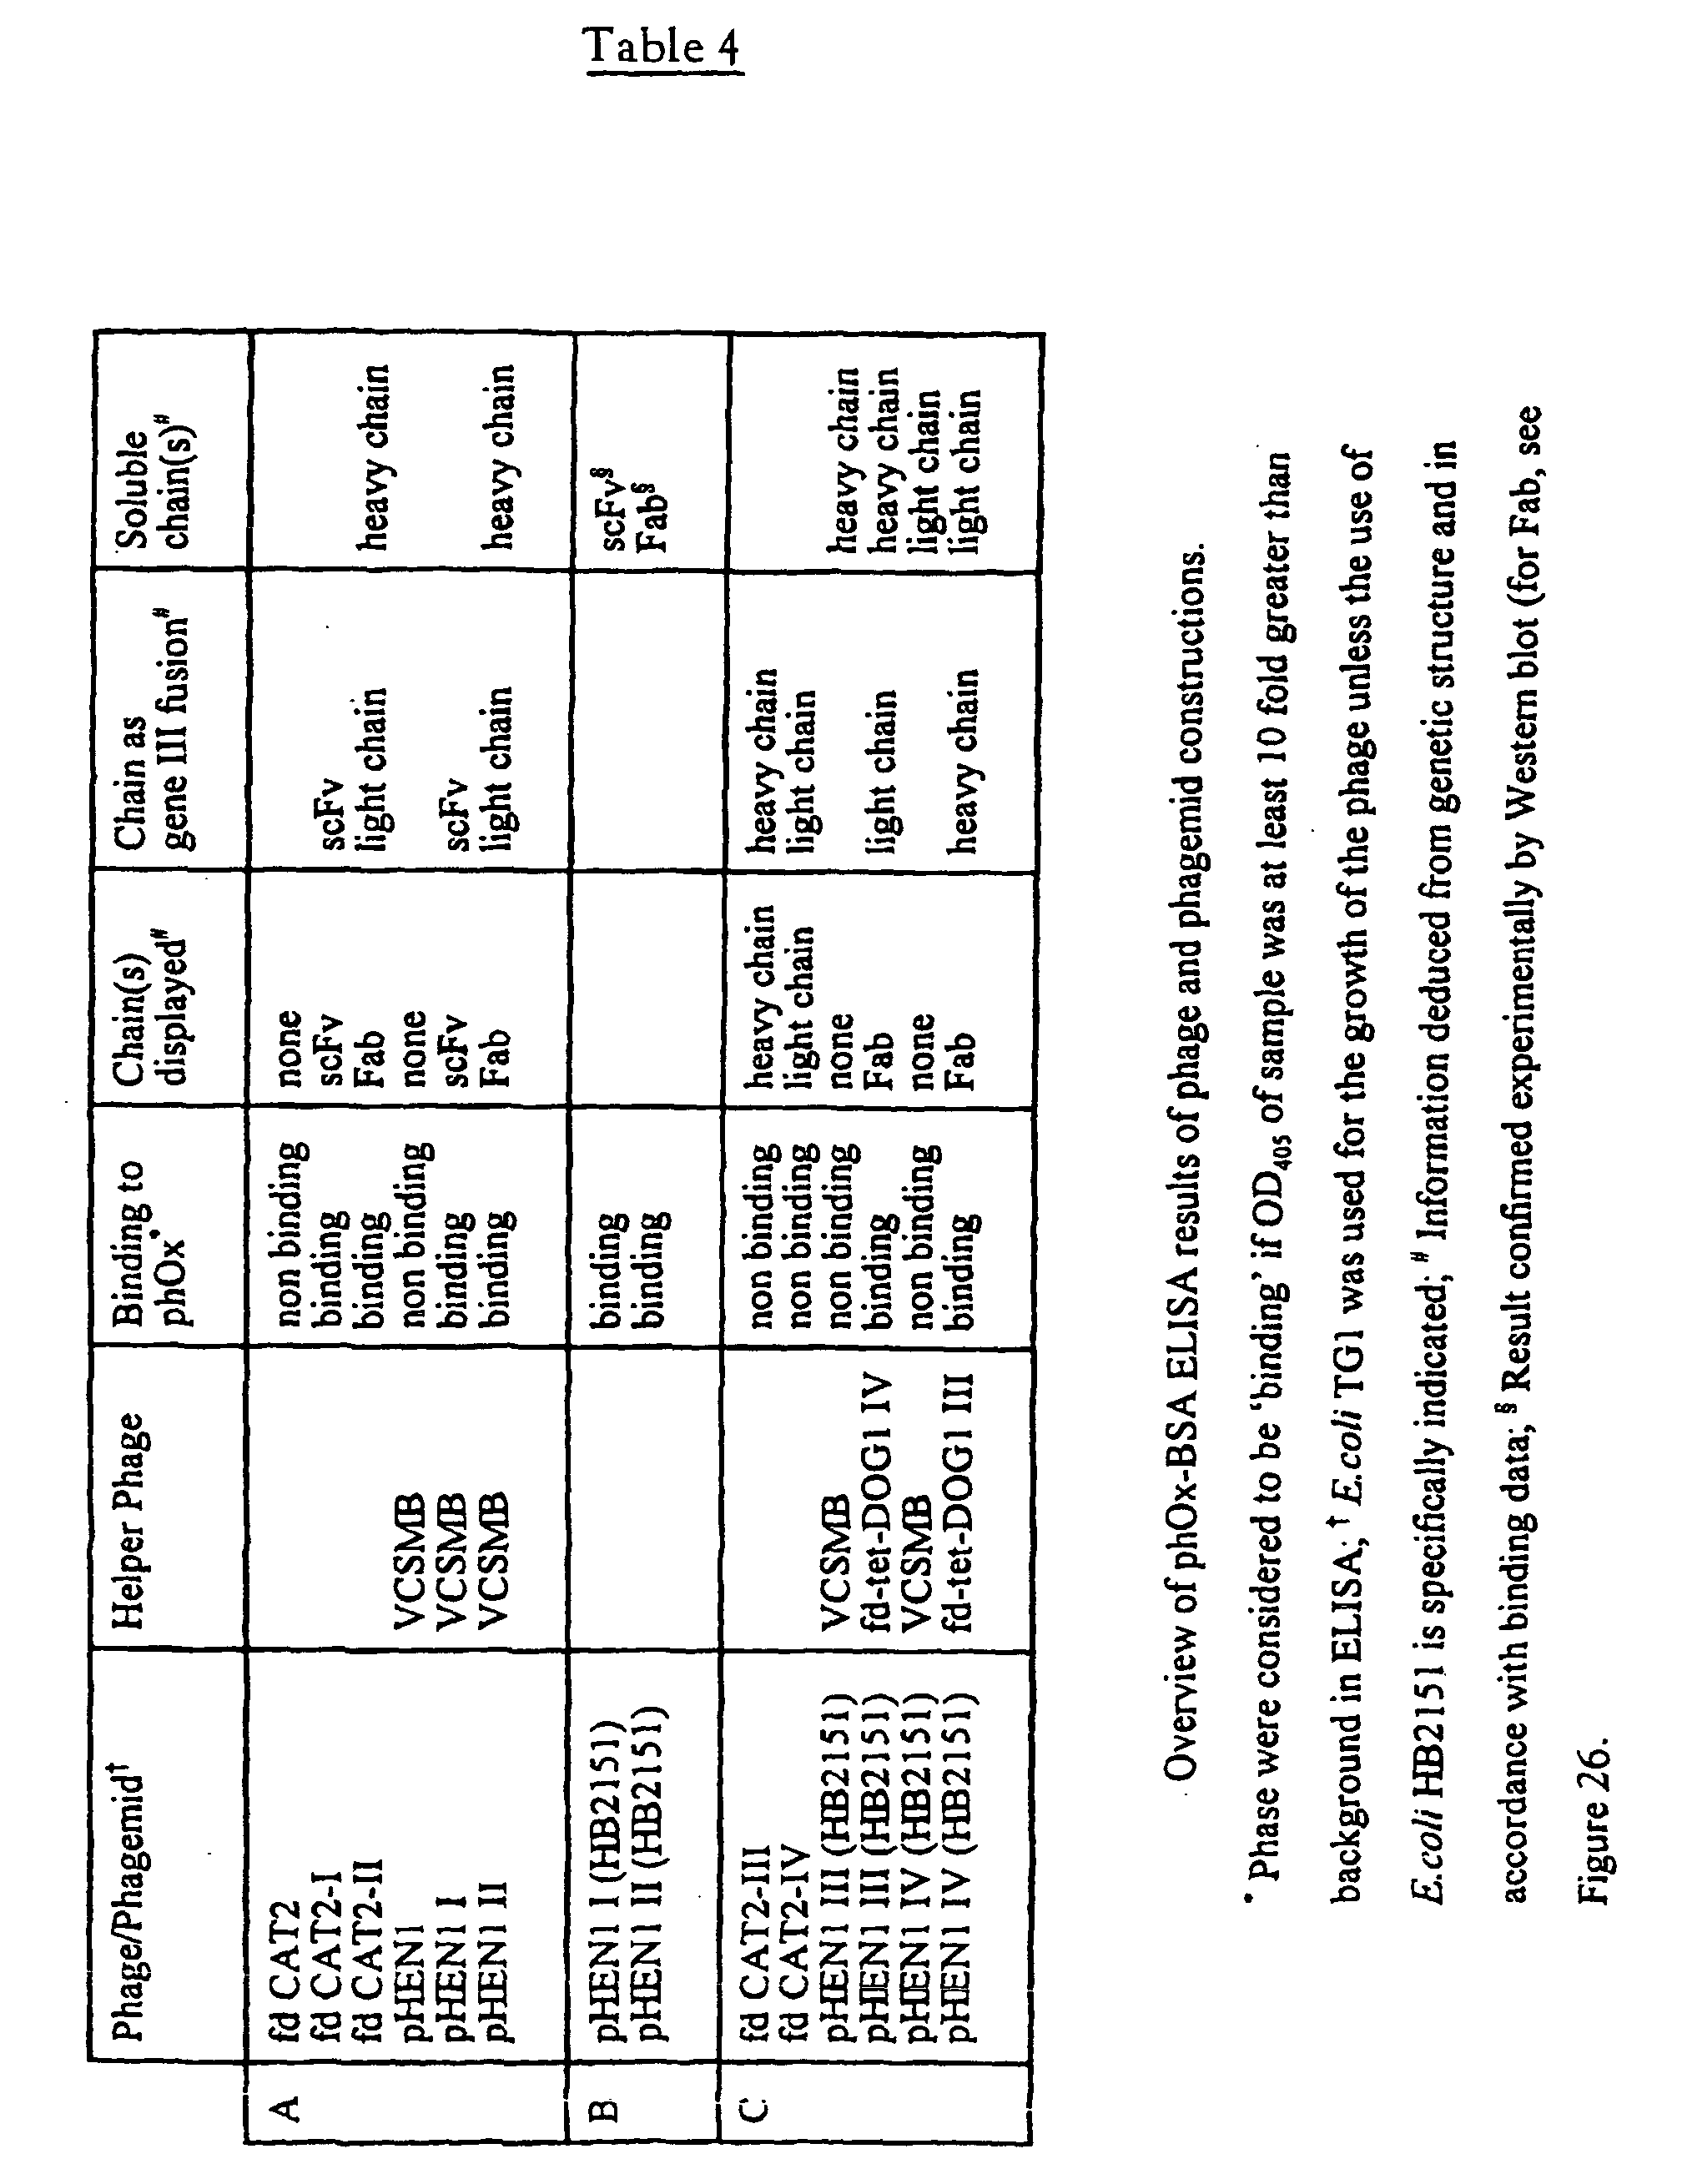 EP B2 METHODS FOR PRODUCING FUNCTIONAL SINGLE CHAIN Fv